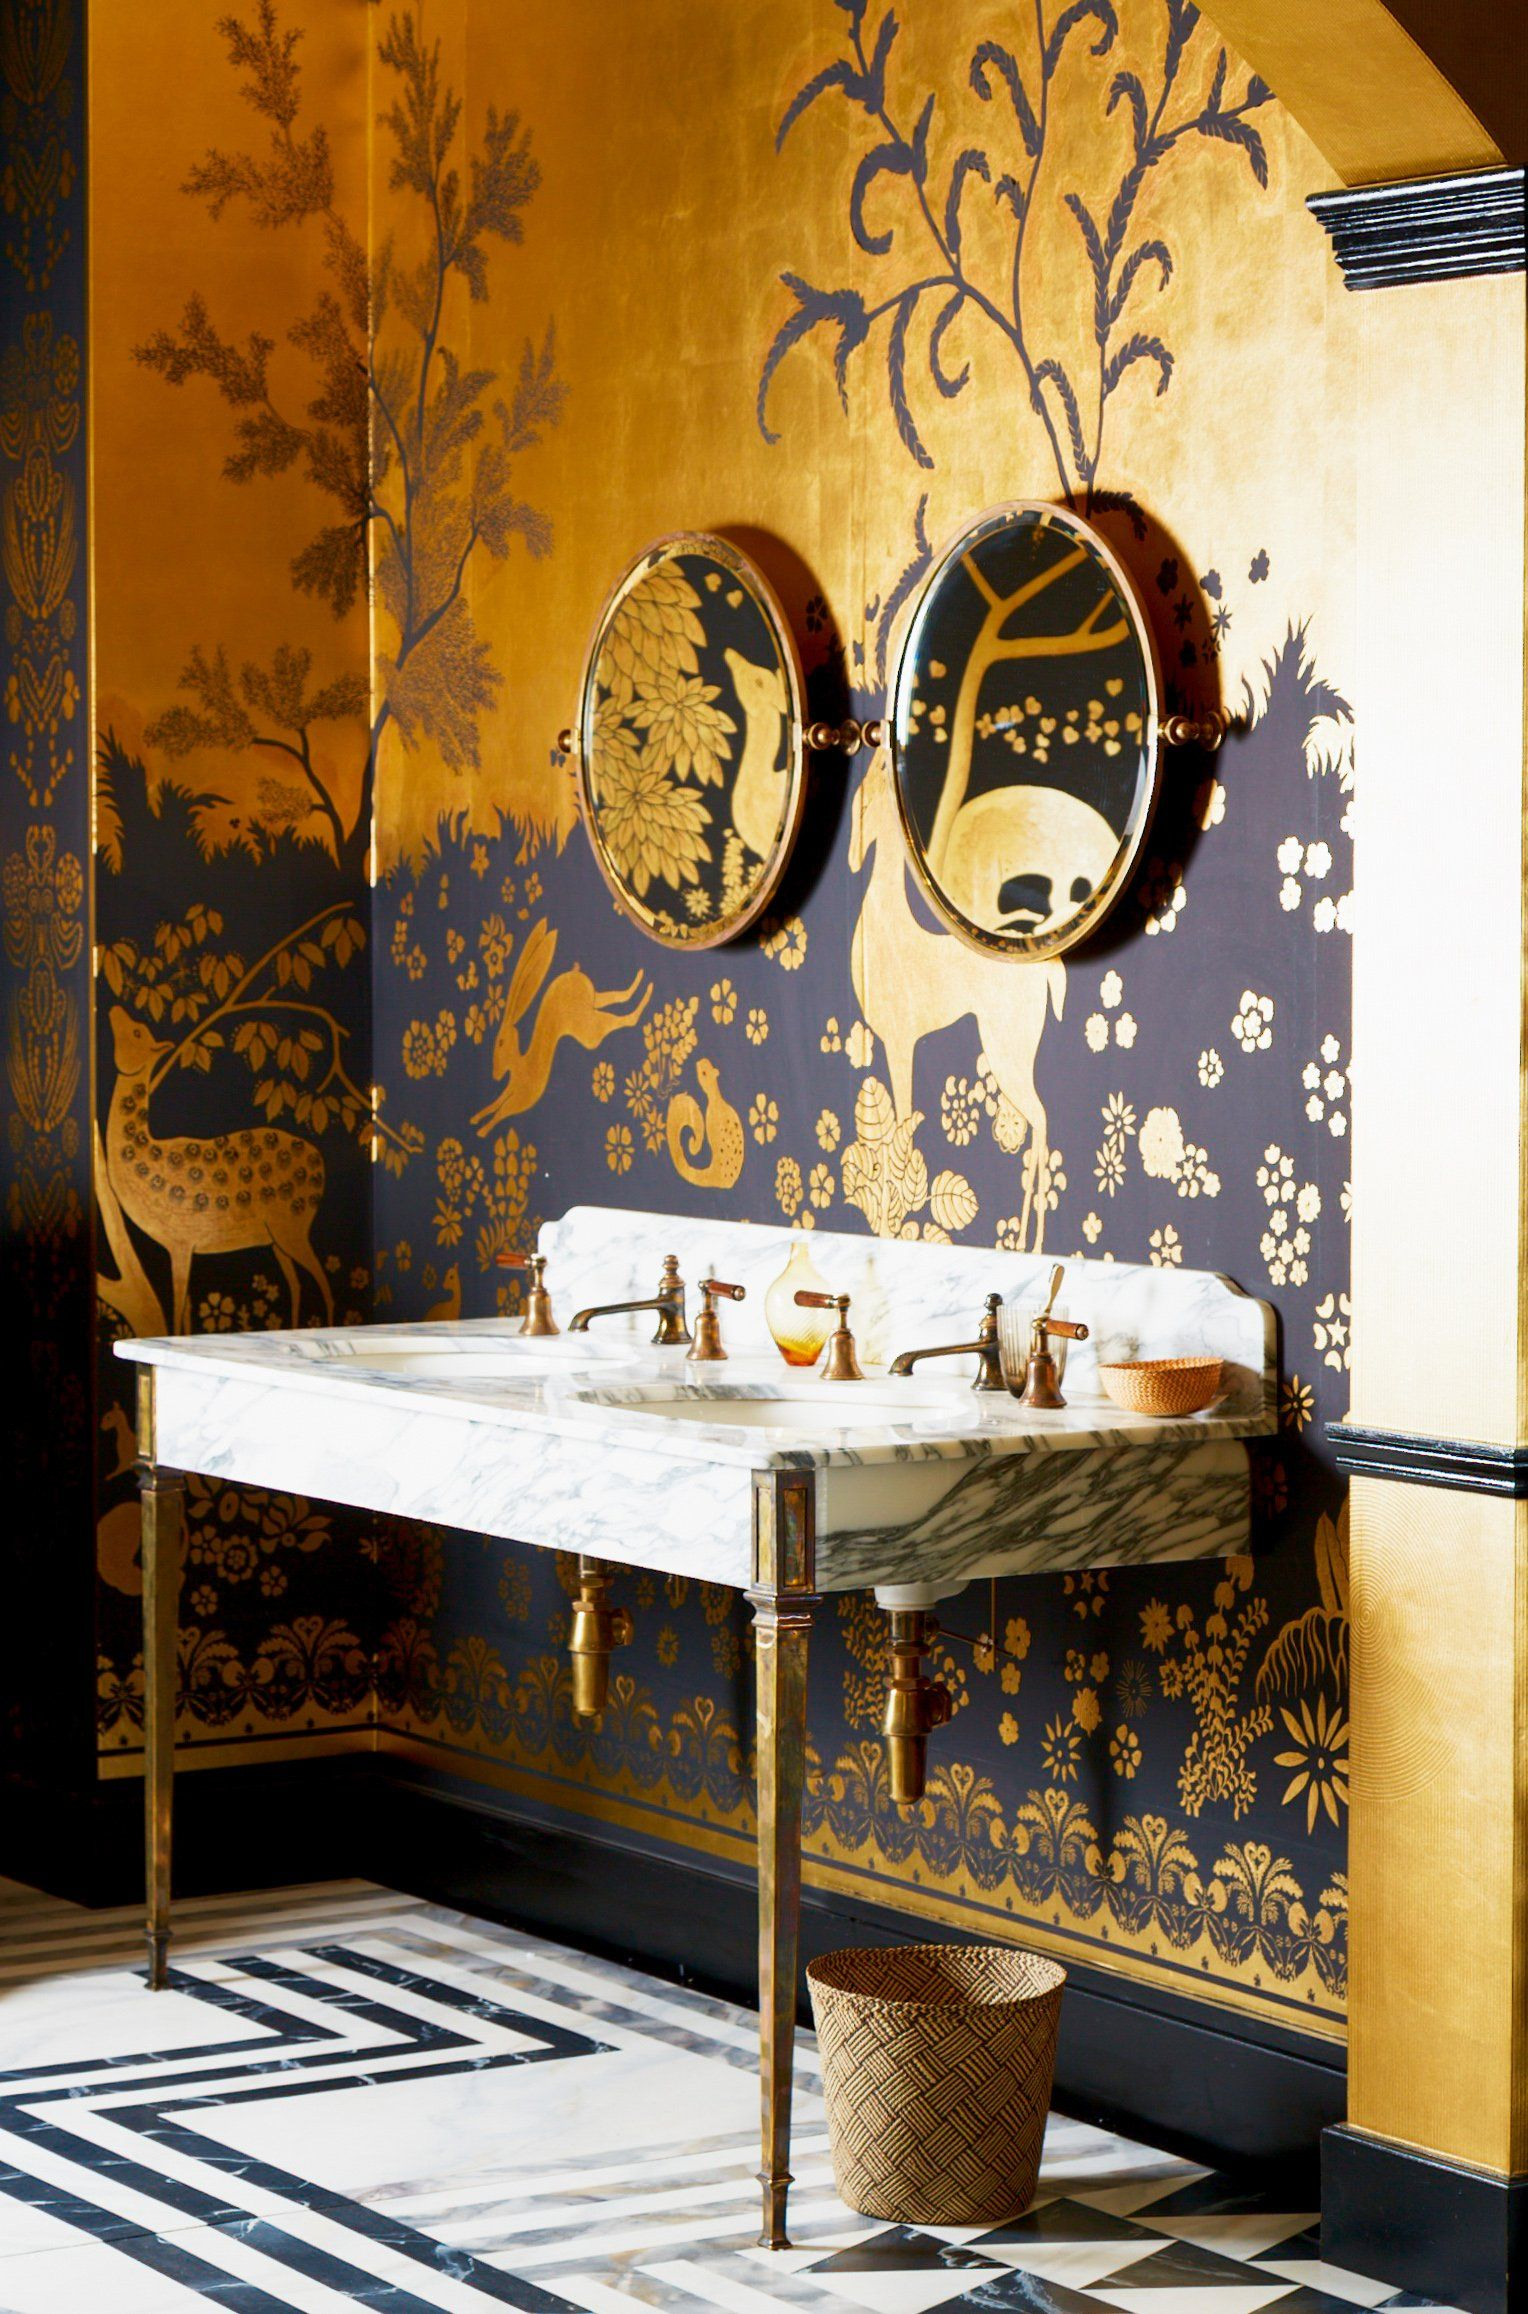 Check The Wallpaper Image By Visiting The Following Link Https  # Deco Salon Avec Tele Mas En Pierre